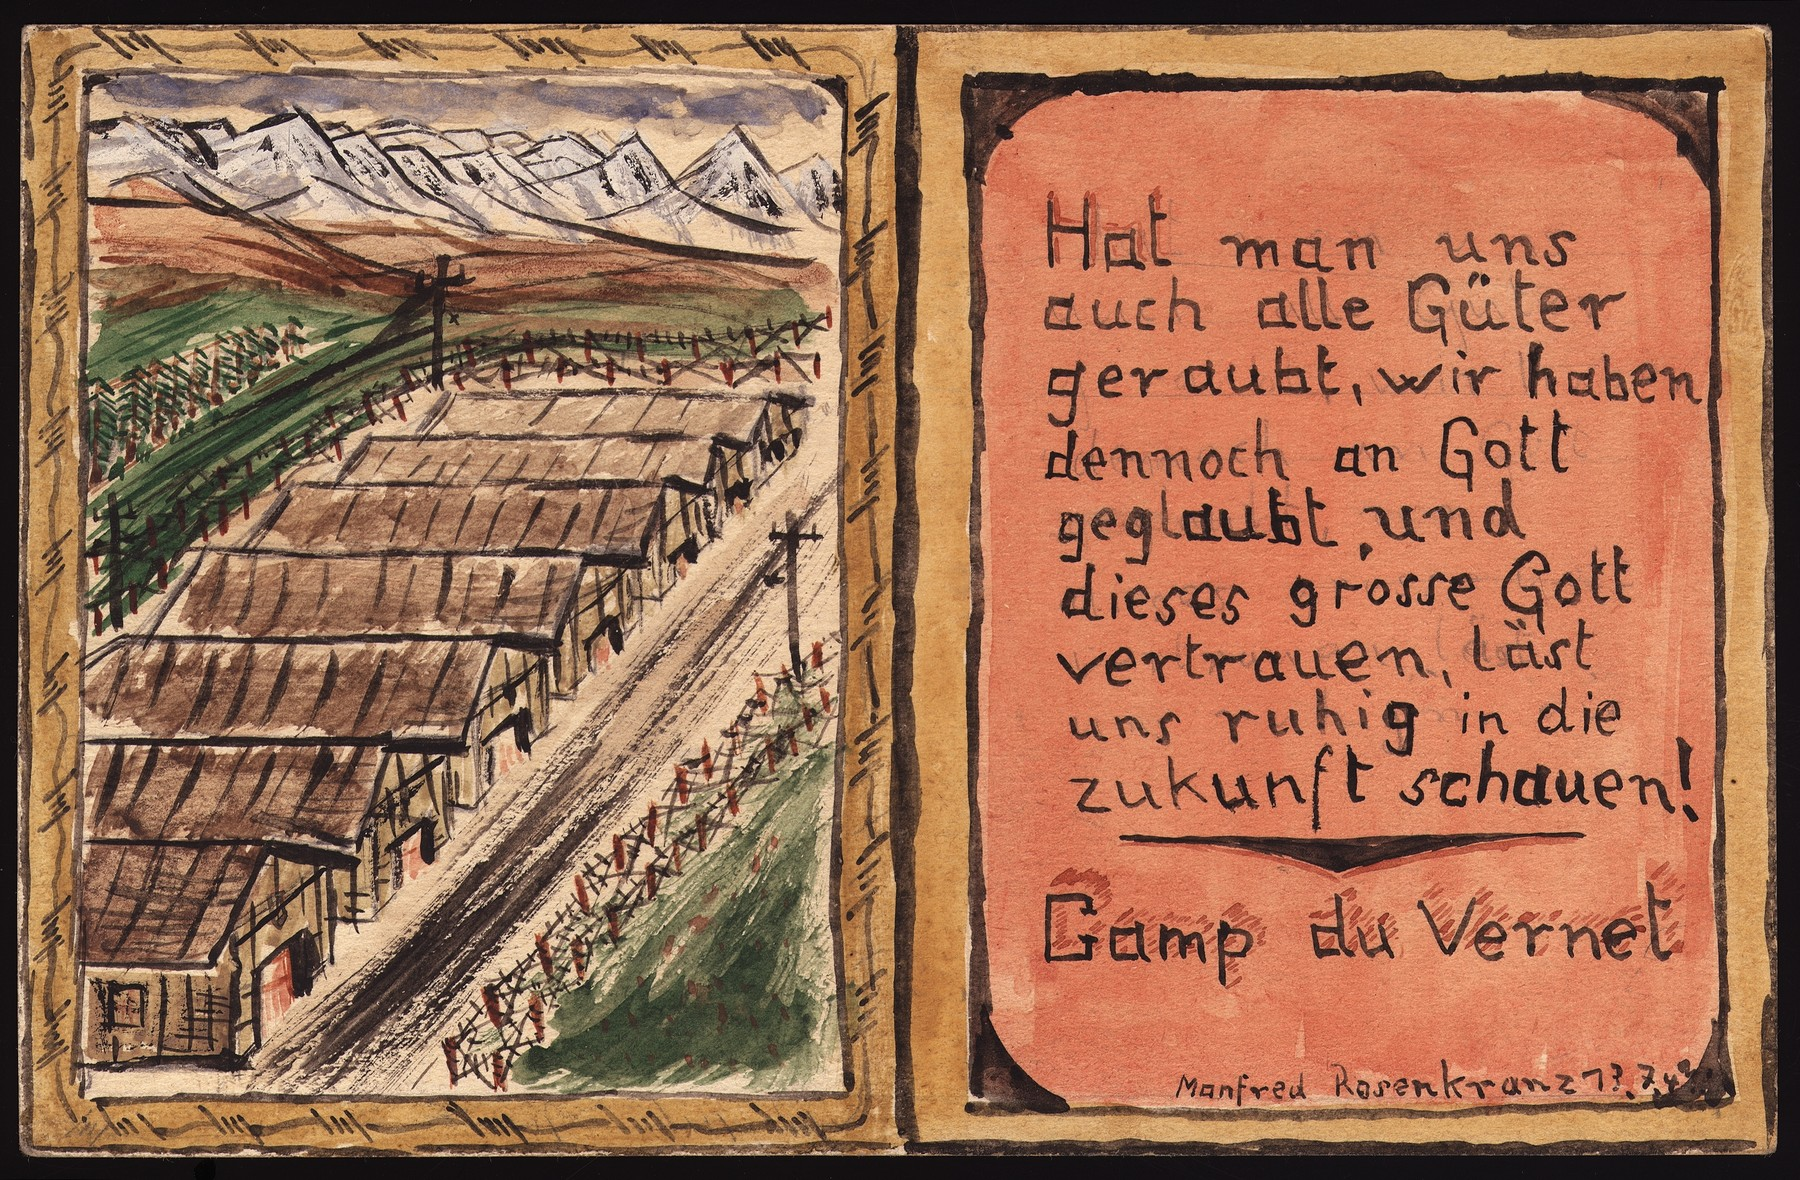 "A colored, pen and ink drawing of the Le Vernet transit camp made on a postcard by Manfred Rosenkranz, a Jewish inmate from Germany.    The German text written on the right side of the postcard reads, ""We have been robbed of all our possessions, yet we maintain our belief in God and trust that this great God will allow us to look calmly into the future.""  The postcard was given by the artist to his fellow prisoner, Chaim Bleiweiss (the donor's father).  Rosenkranz is thought to have died in a typhus epidemic in Le Vernet."